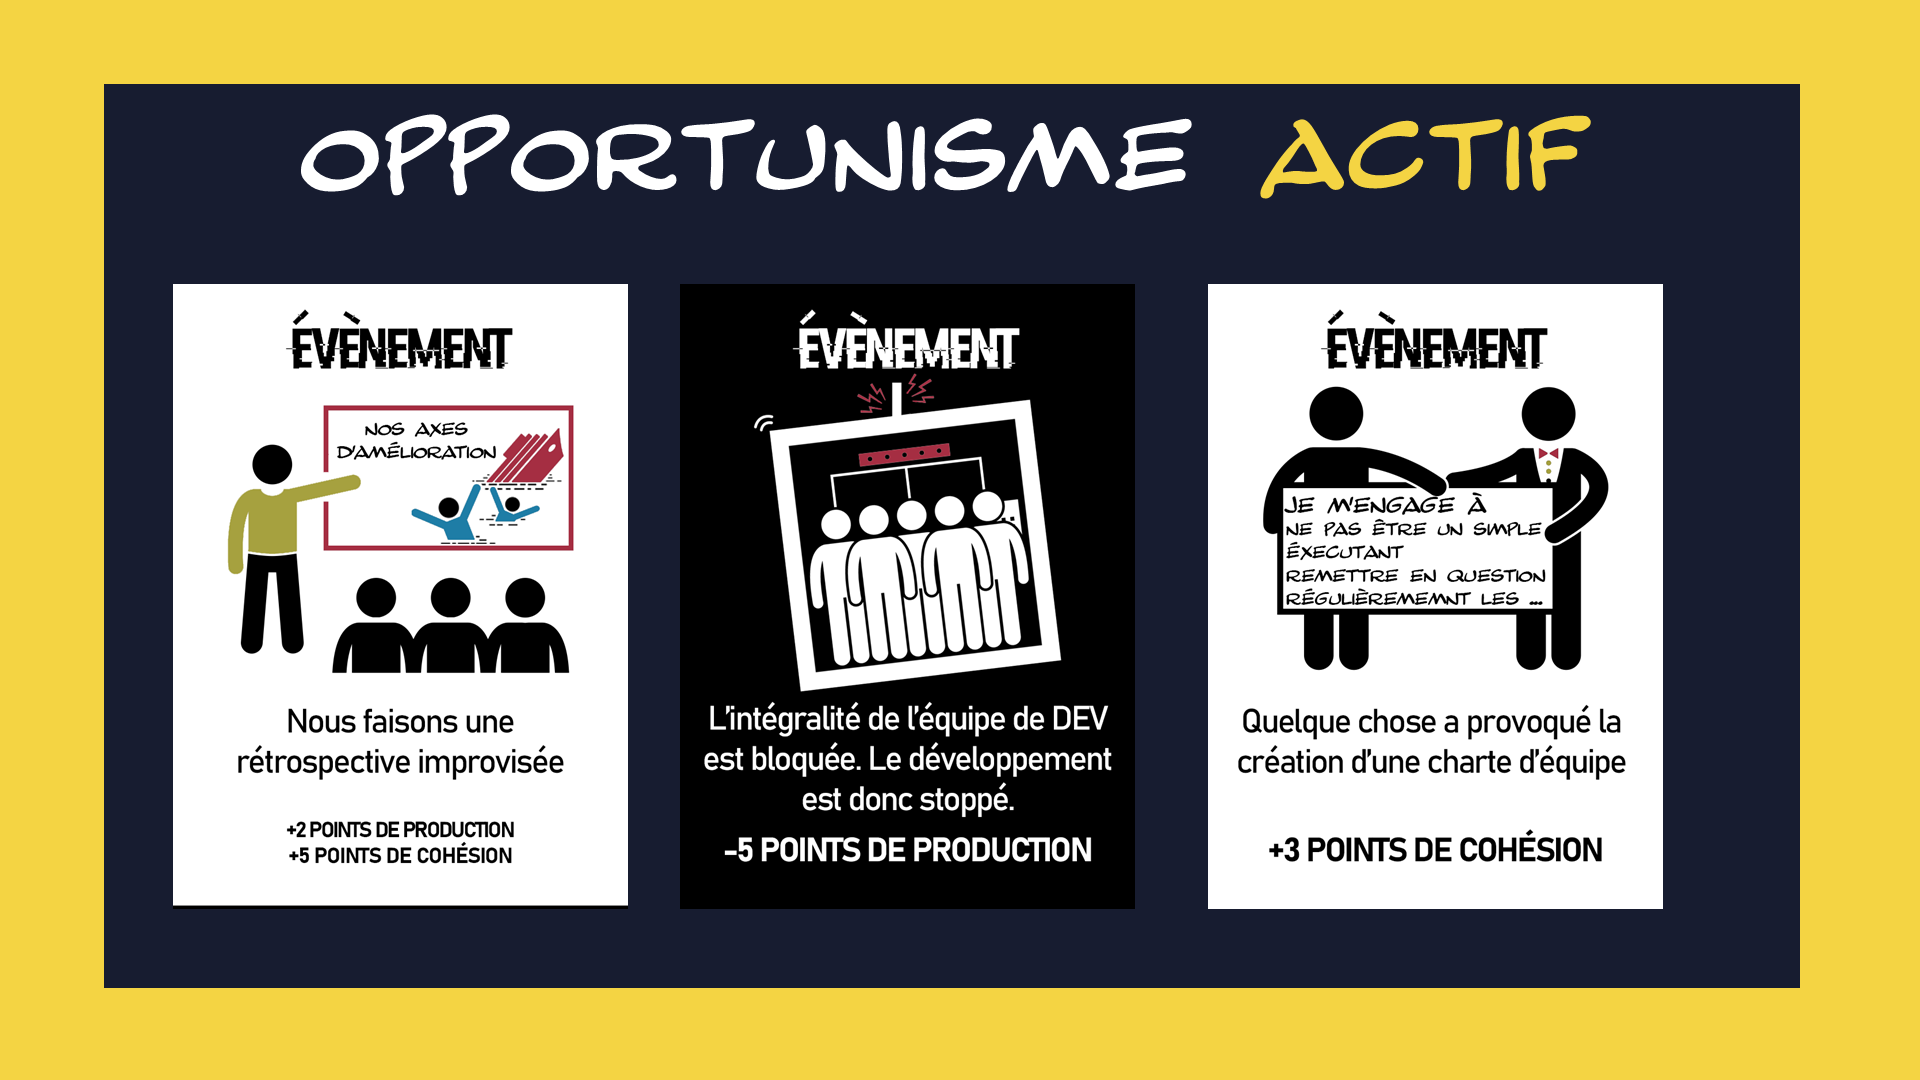 SERIOUS GAME : OPPORTUNISME ACTIF